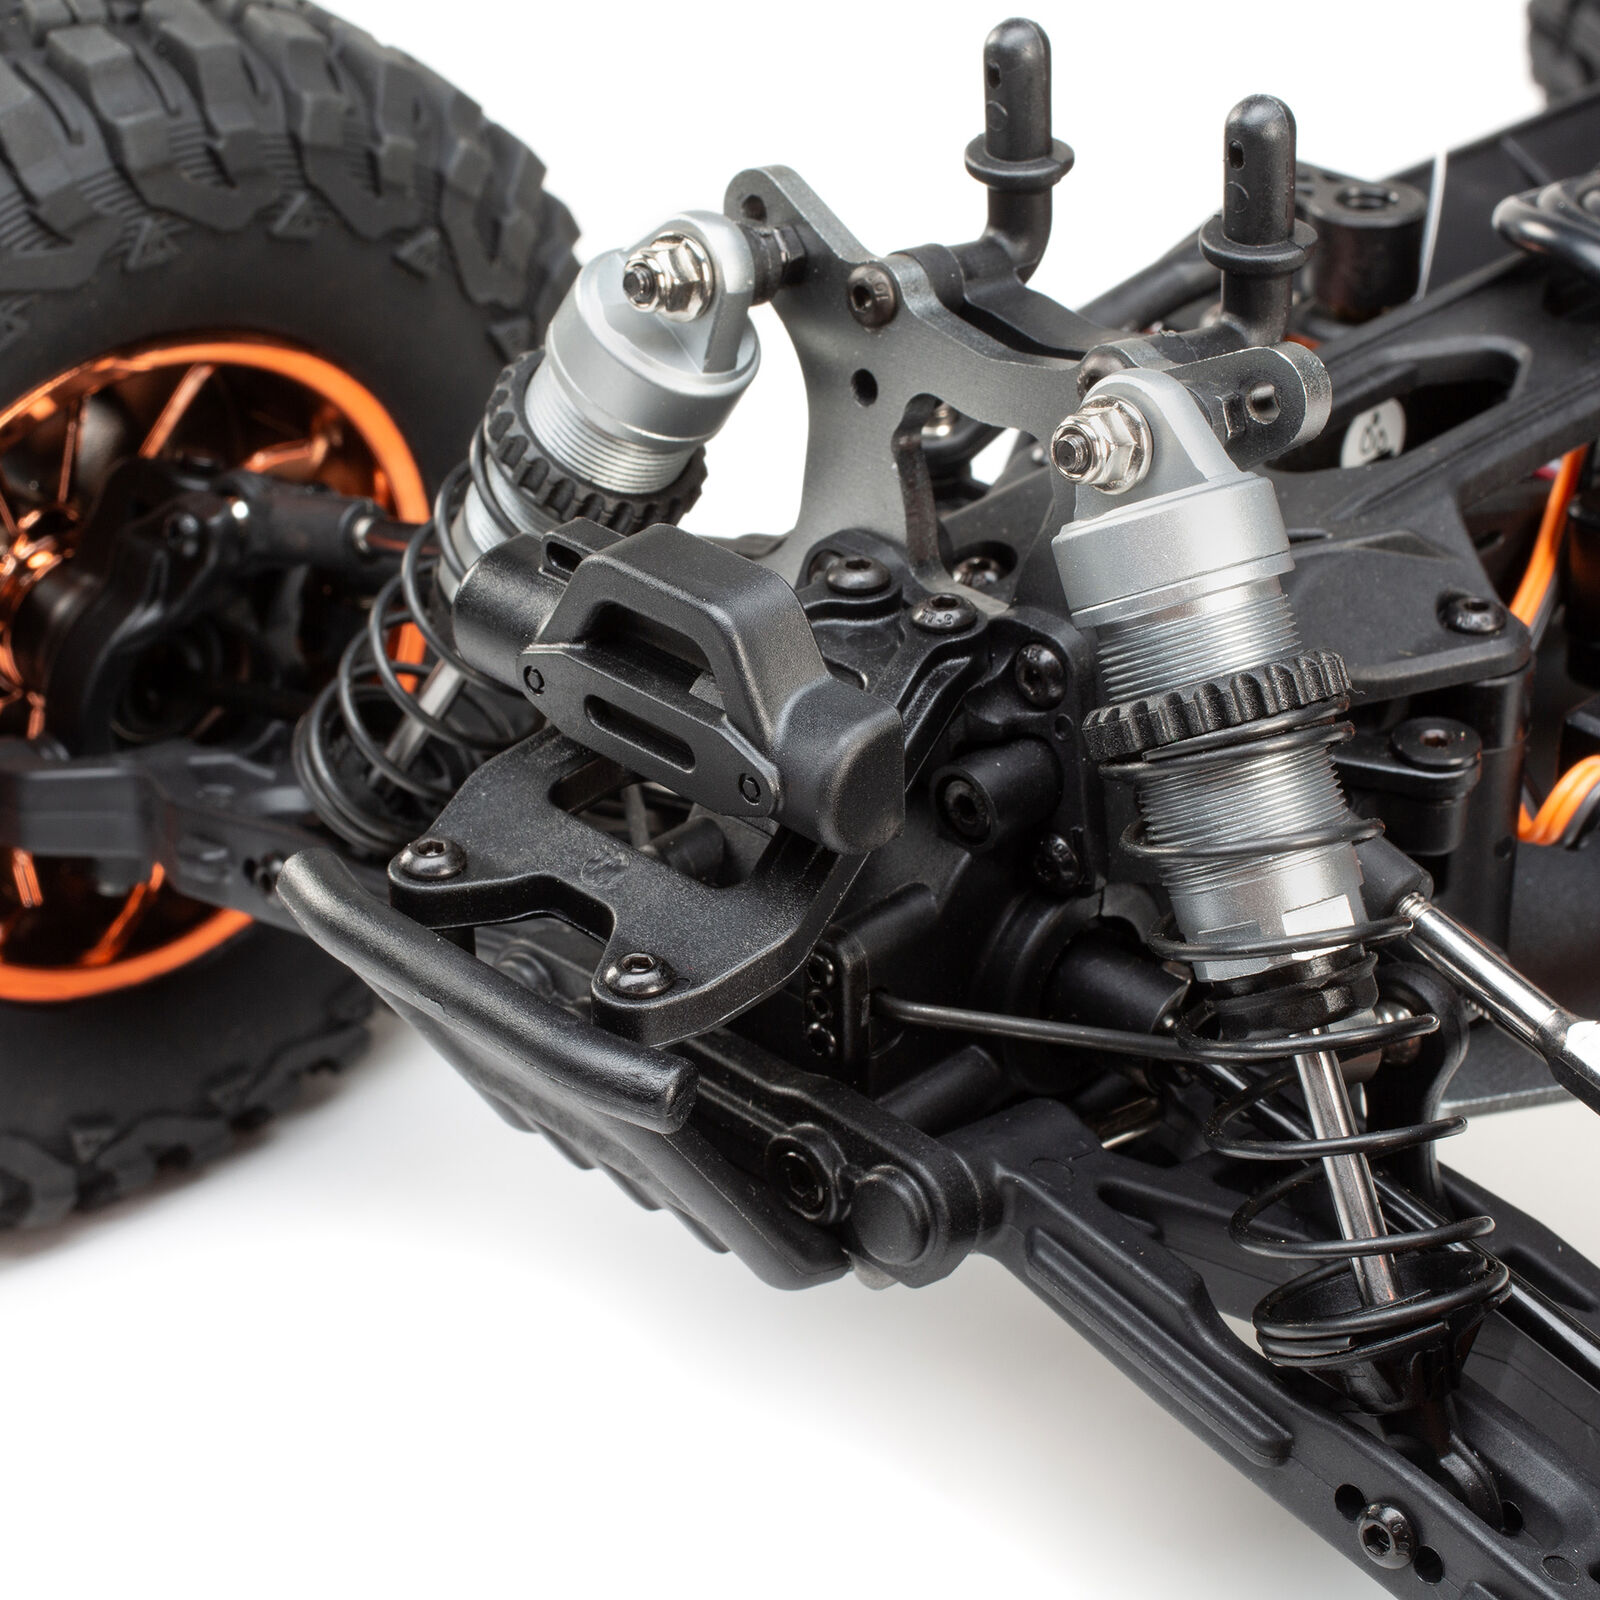 1/10 Lasernut U4 4WD Brushless RTR with Smart and AVC, Blue